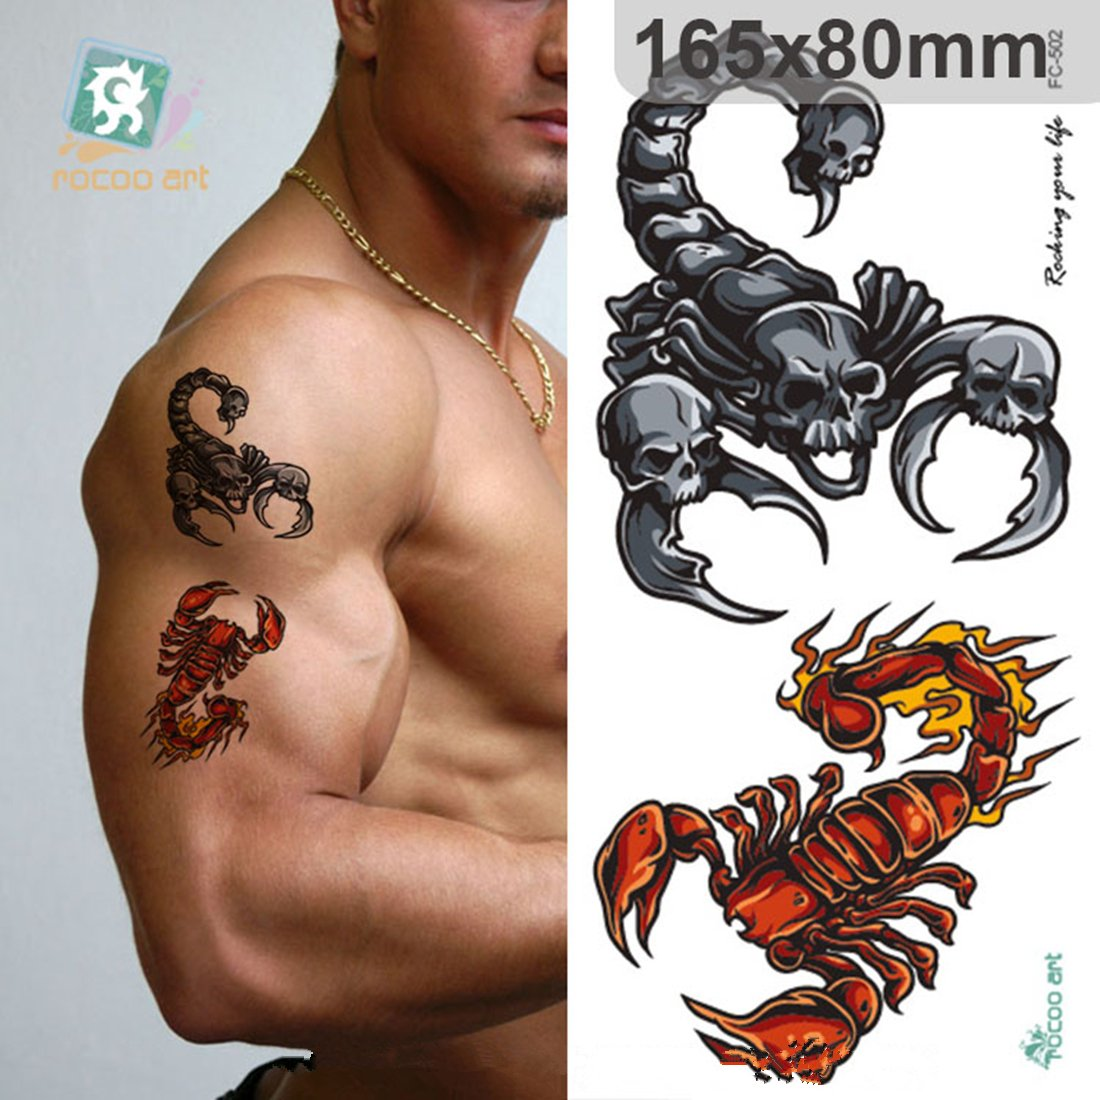 66b805567 Amazon.com: ZUZAN New Home Innovations, Fashion 3D Designs Personality  Trend Multiple Style Big Temporary Tattoos: Beauty